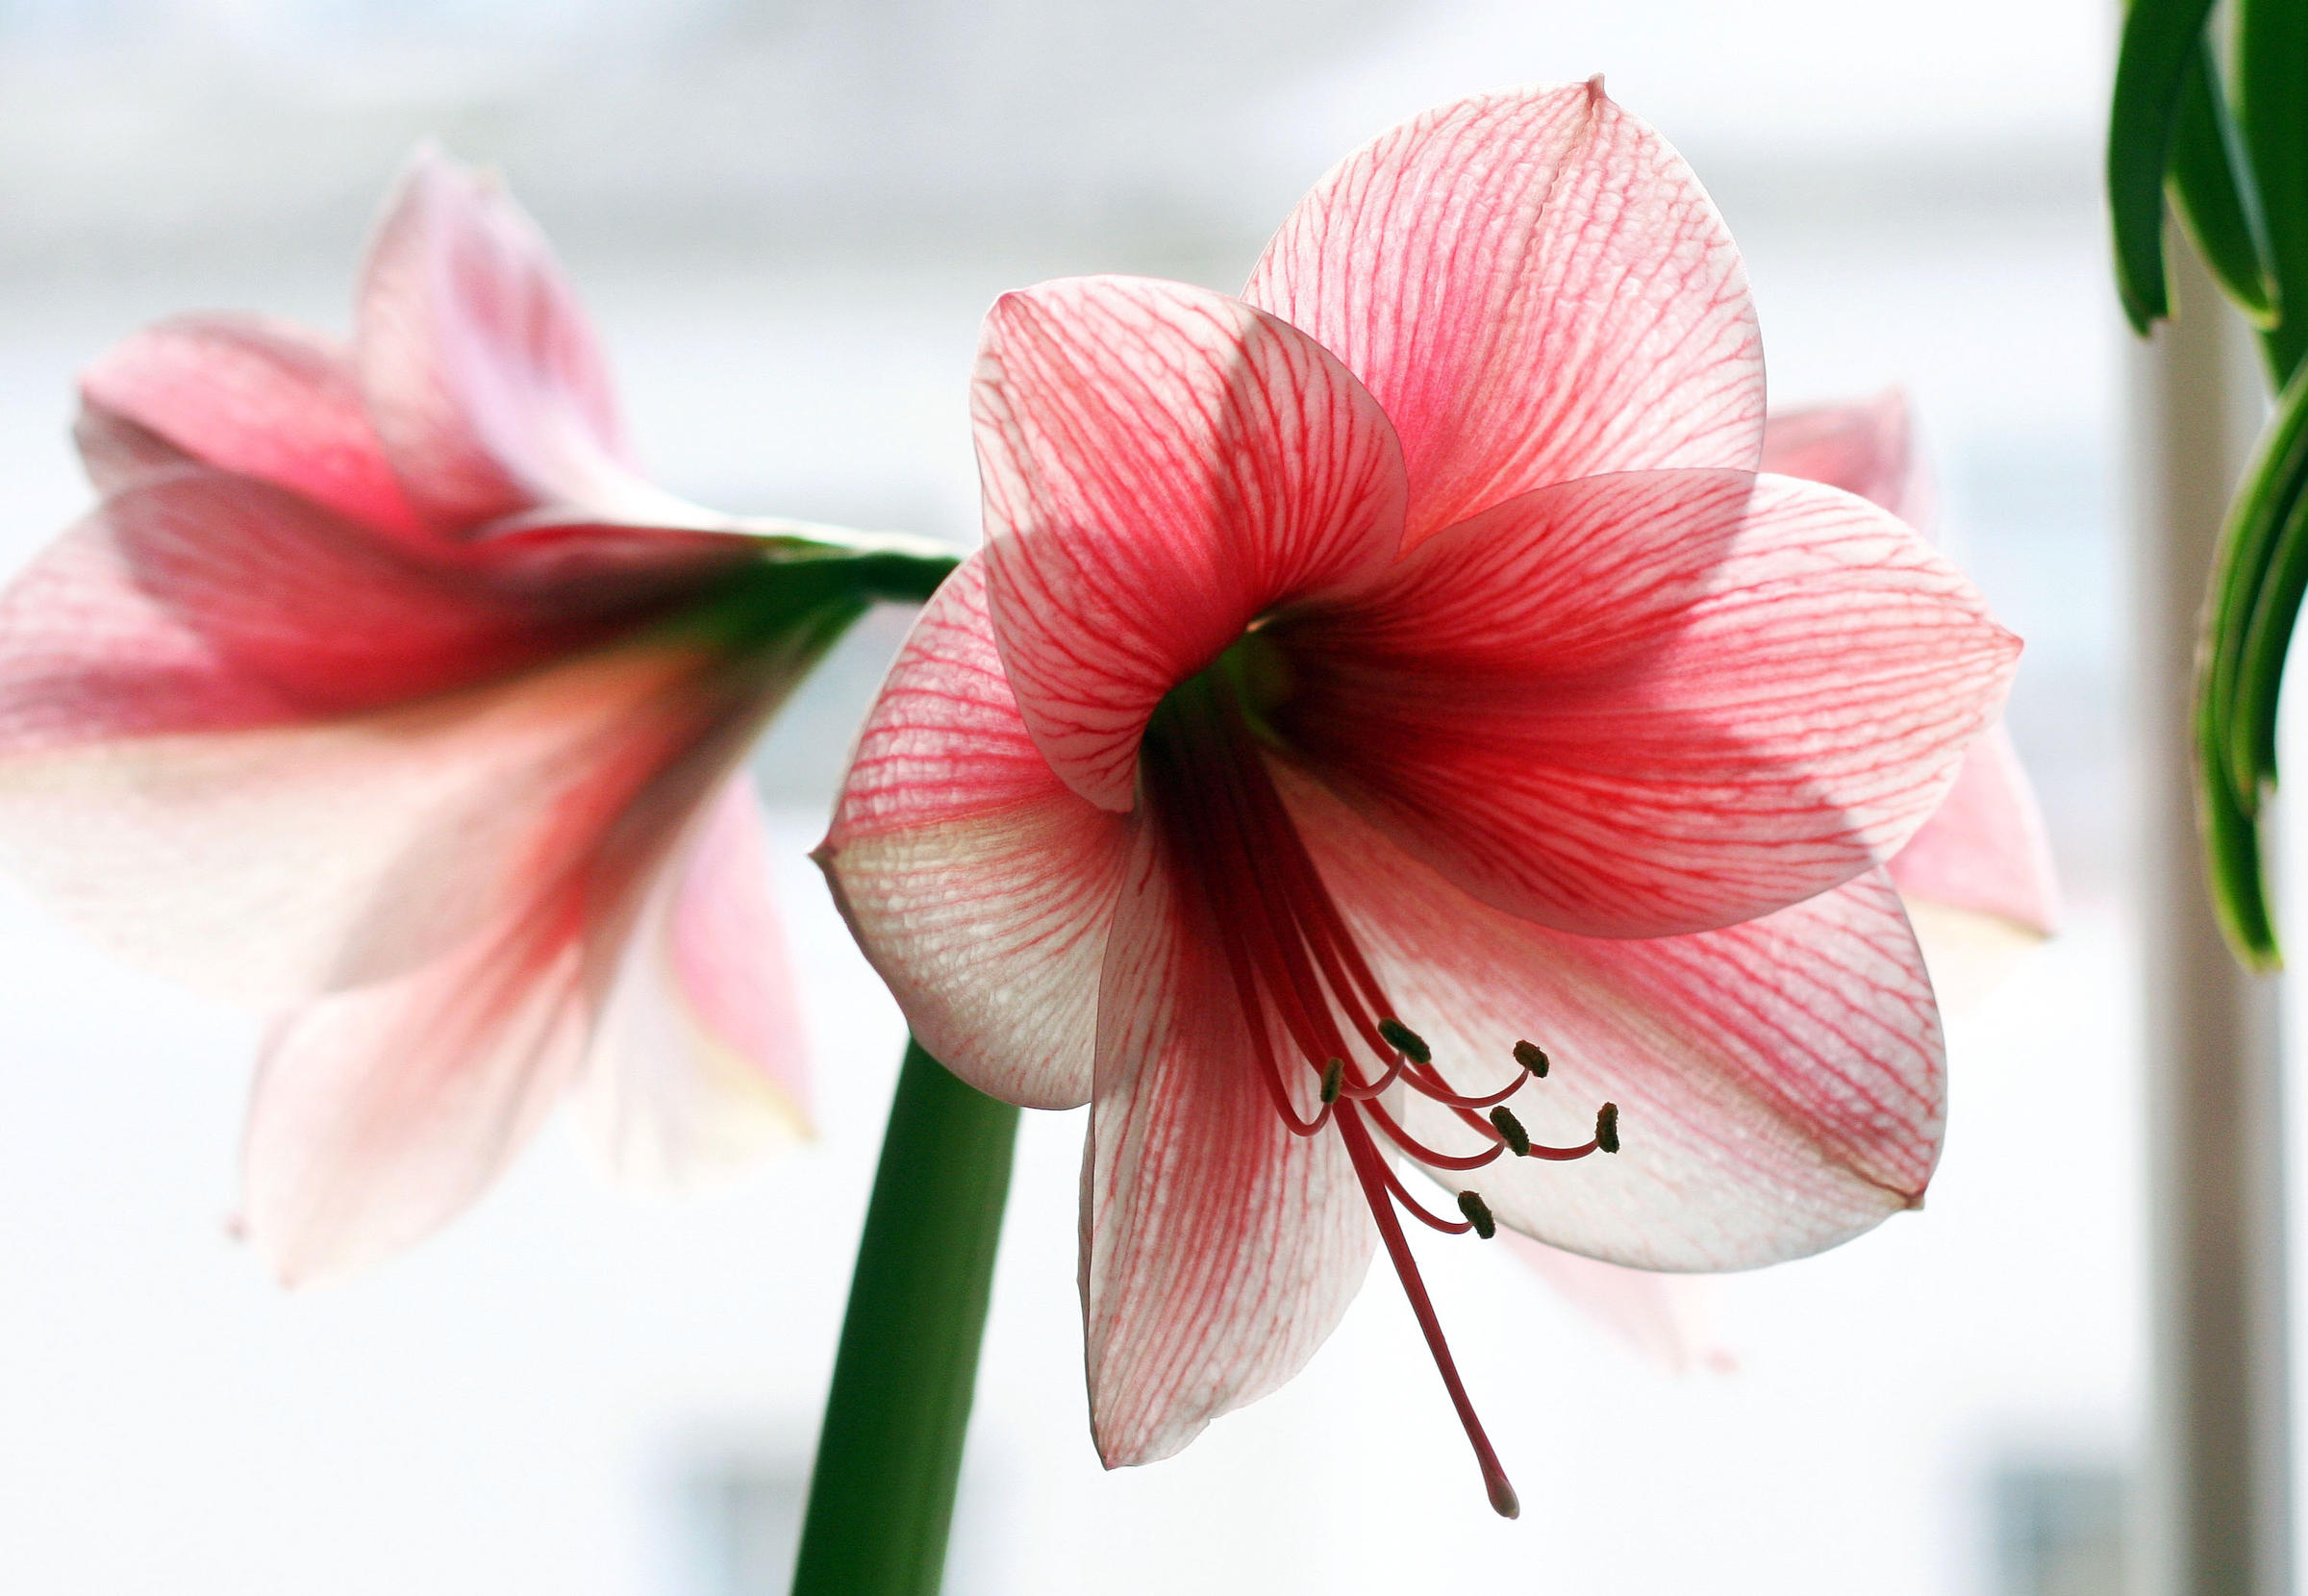 Connecticut Garden Journal: Fall in Love With Amaryllis | WNPR News